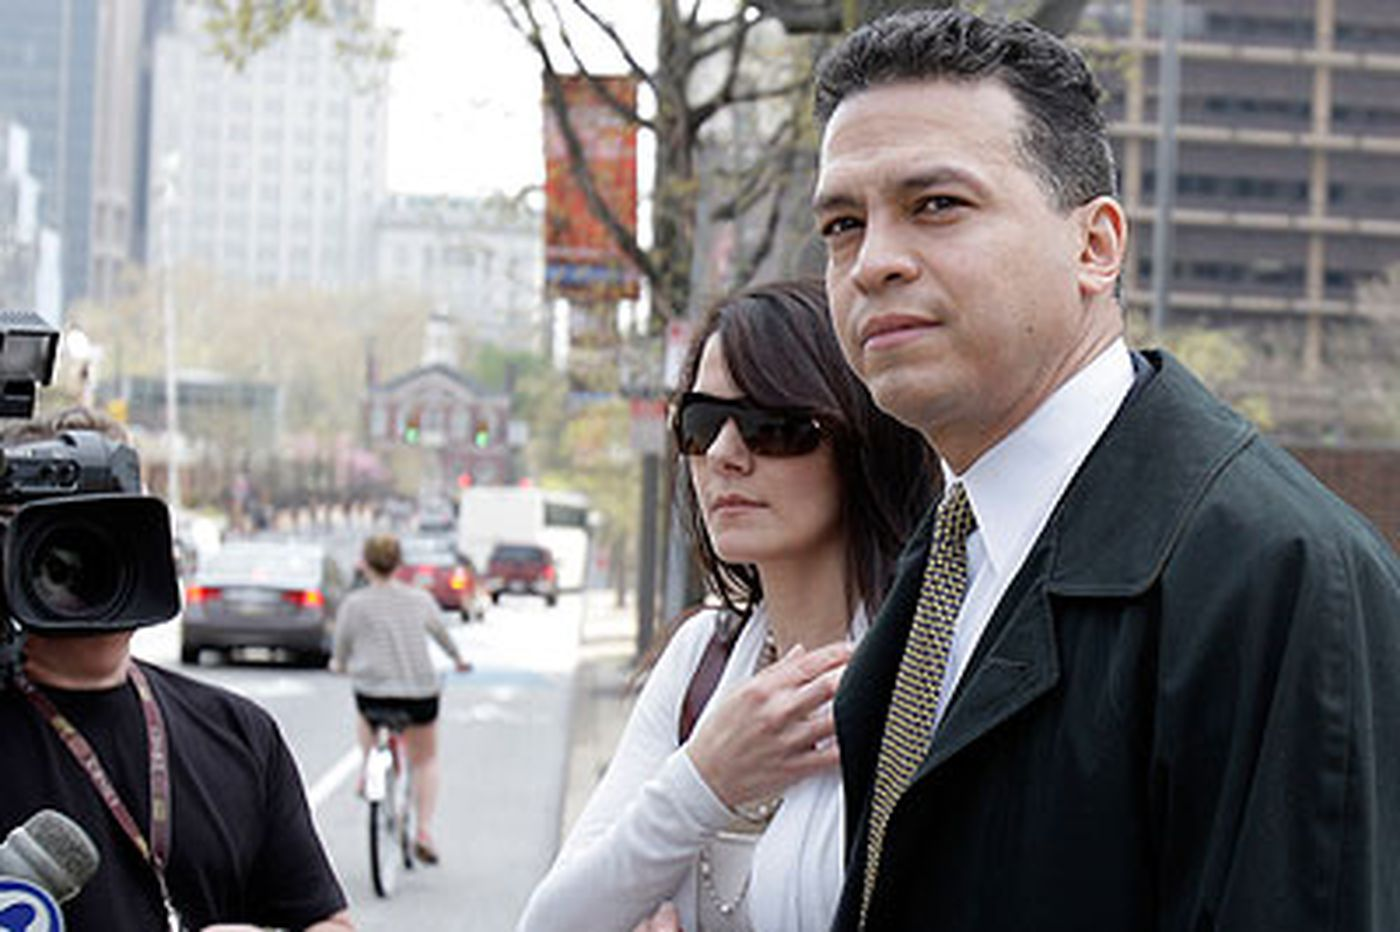 Daniel Castro jurors say they believed the FBI had set up ex-Philly cop